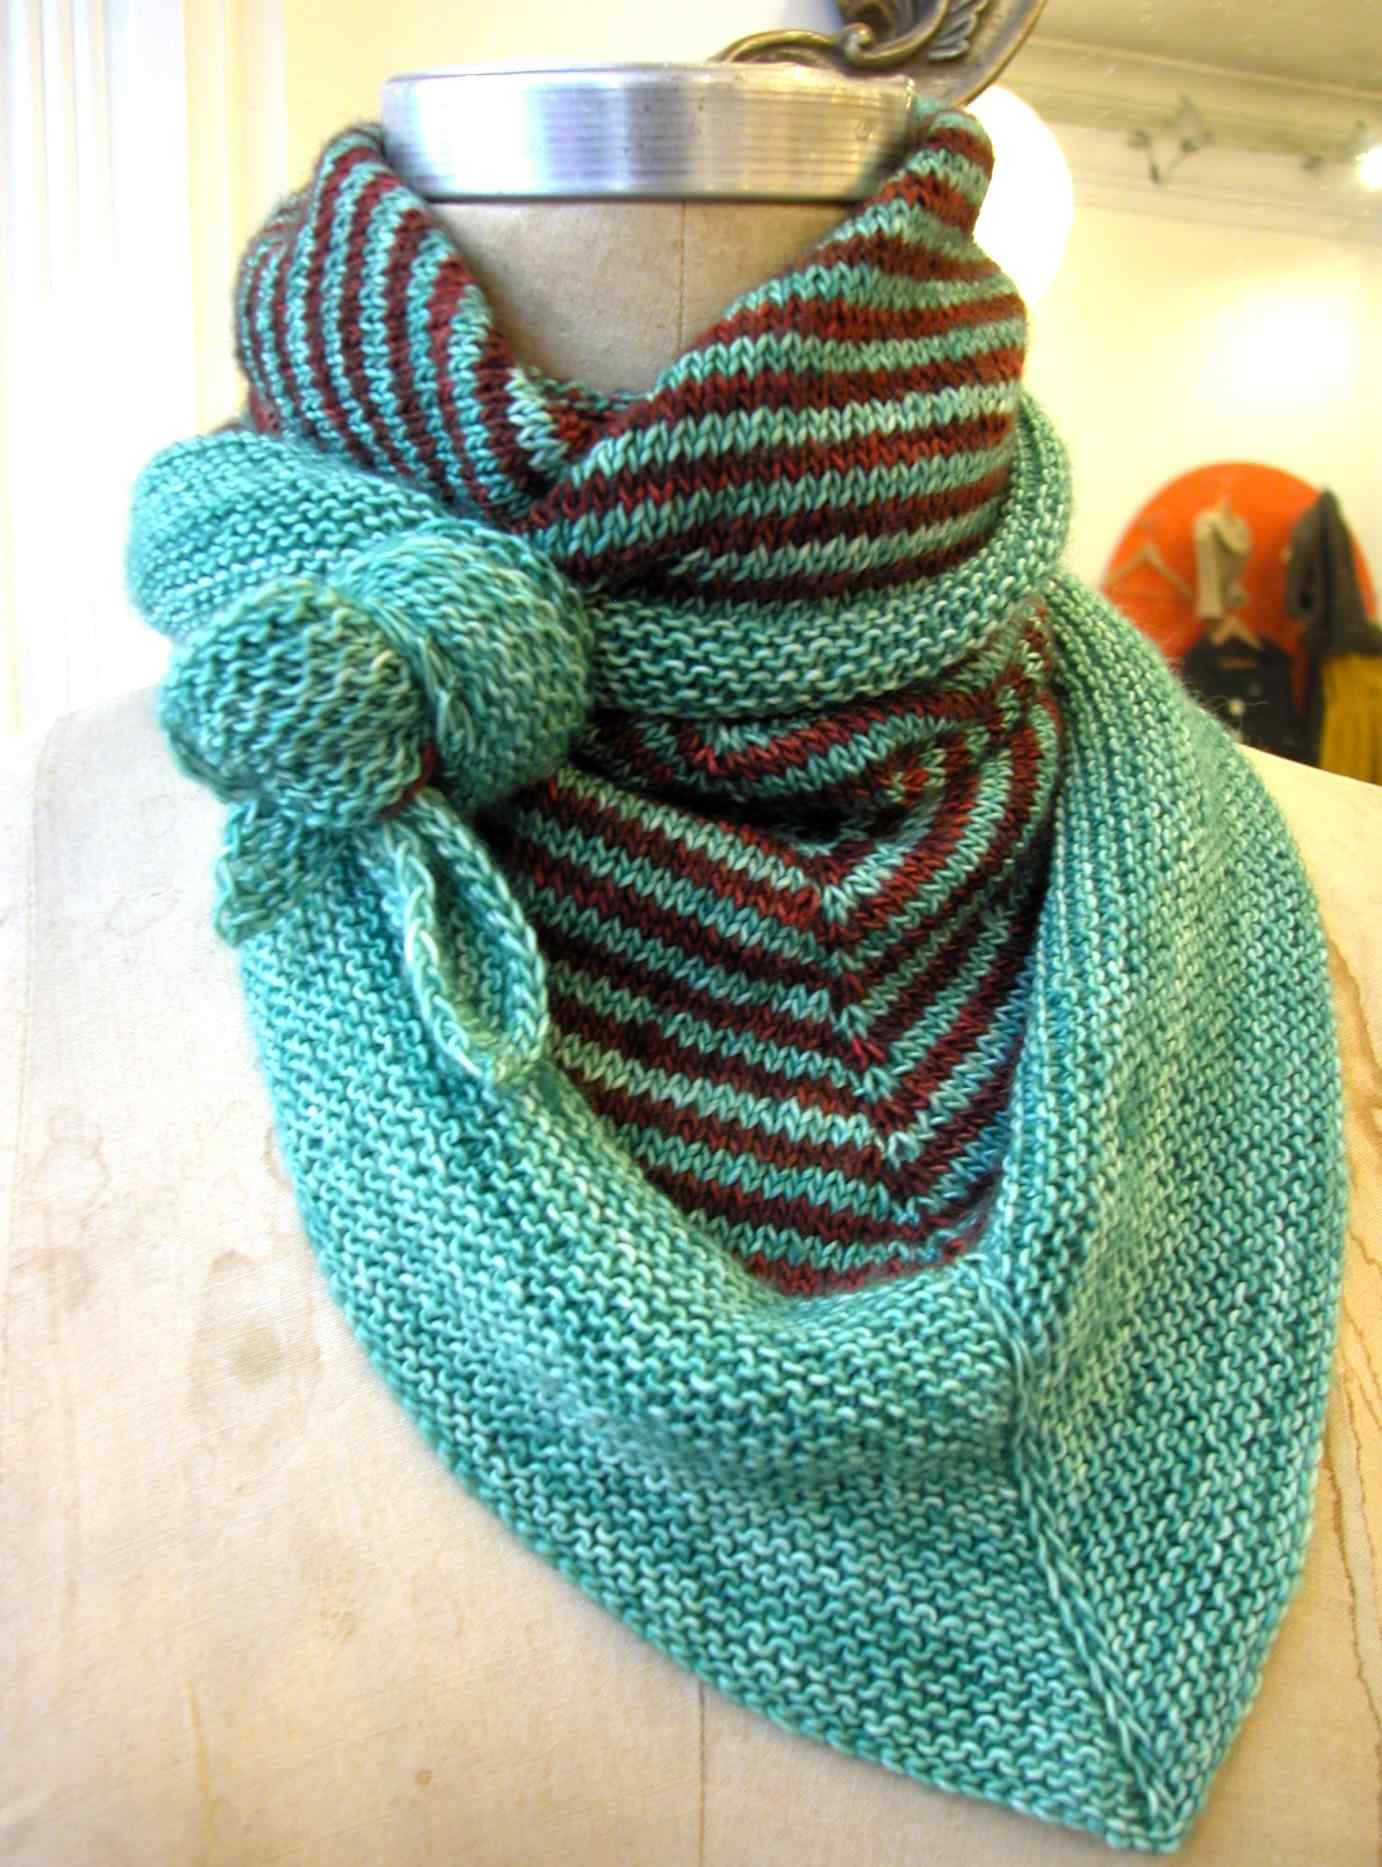 7 Triangle Scarf Knitting Patterns - The Funky Stitch